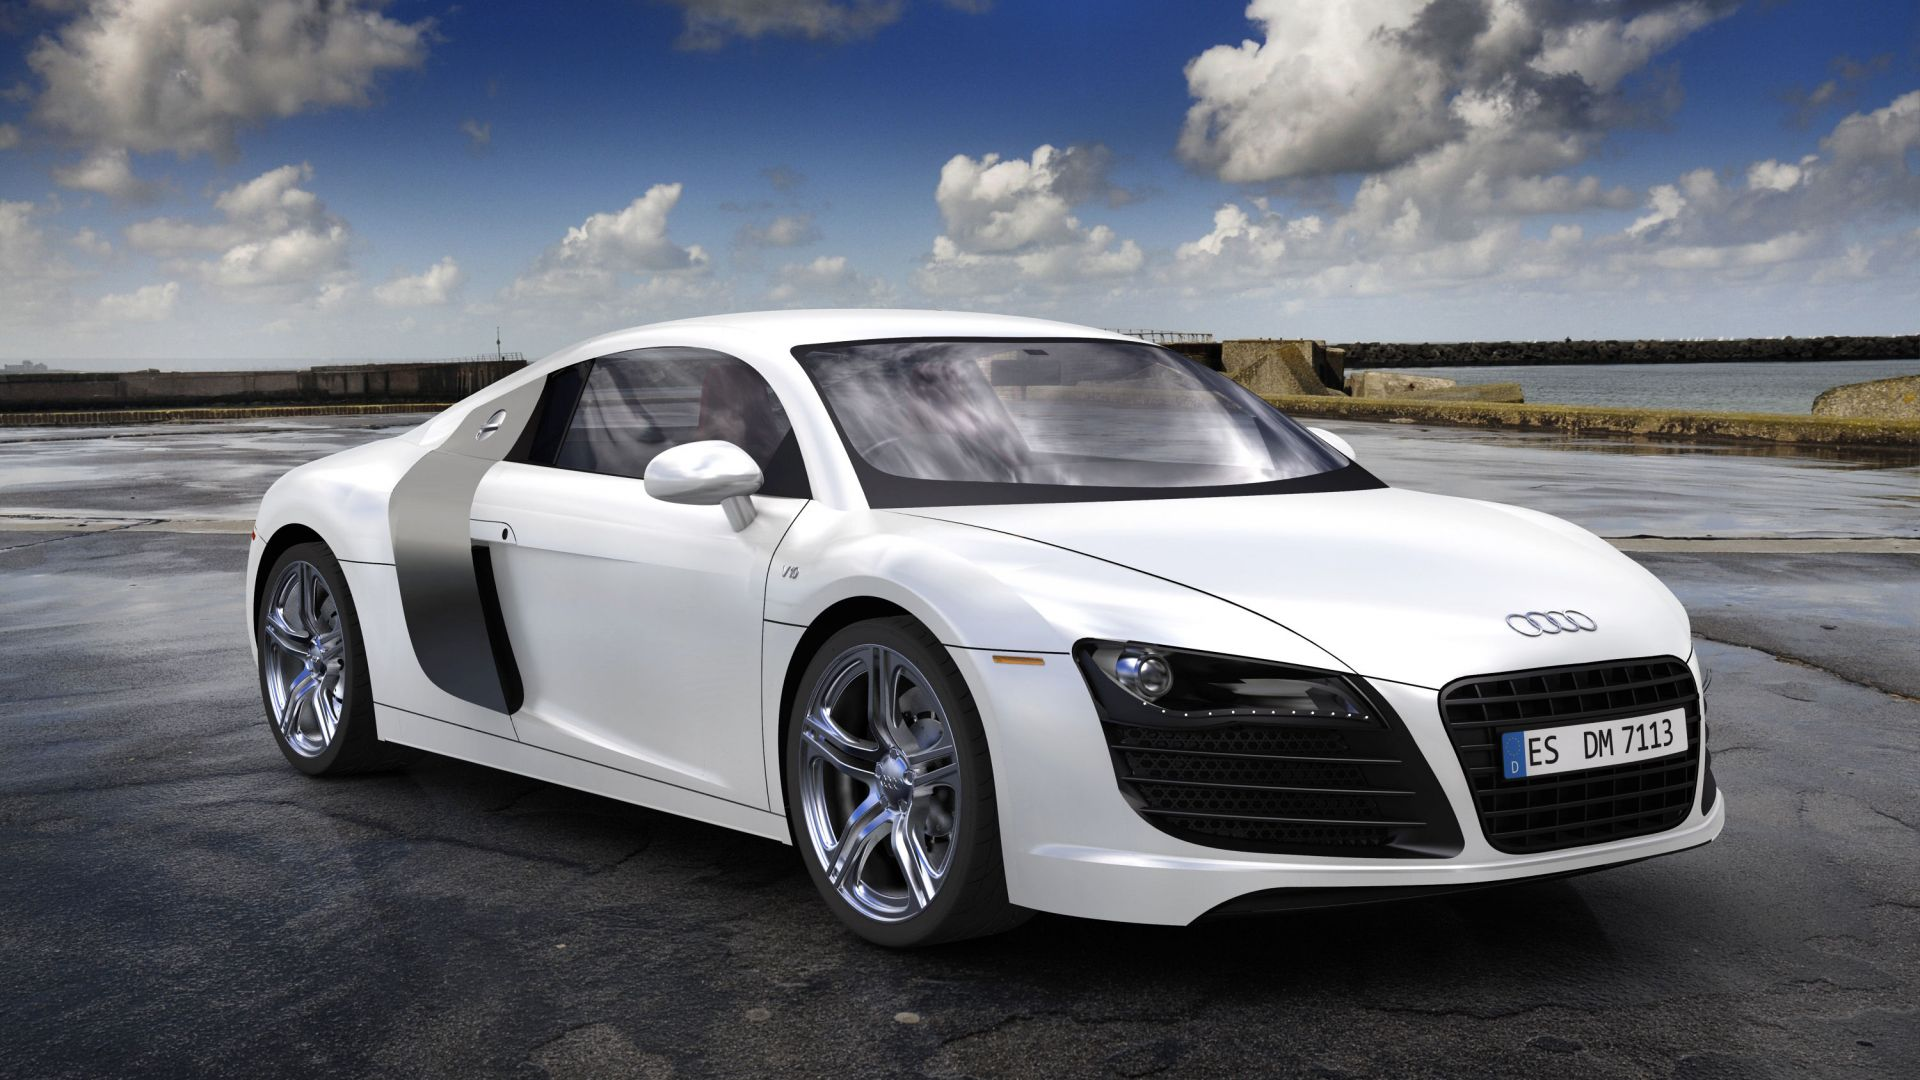 wallpaper audi r8 sport car coupe review buy rent. Black Bedroom Furniture Sets. Home Design Ideas